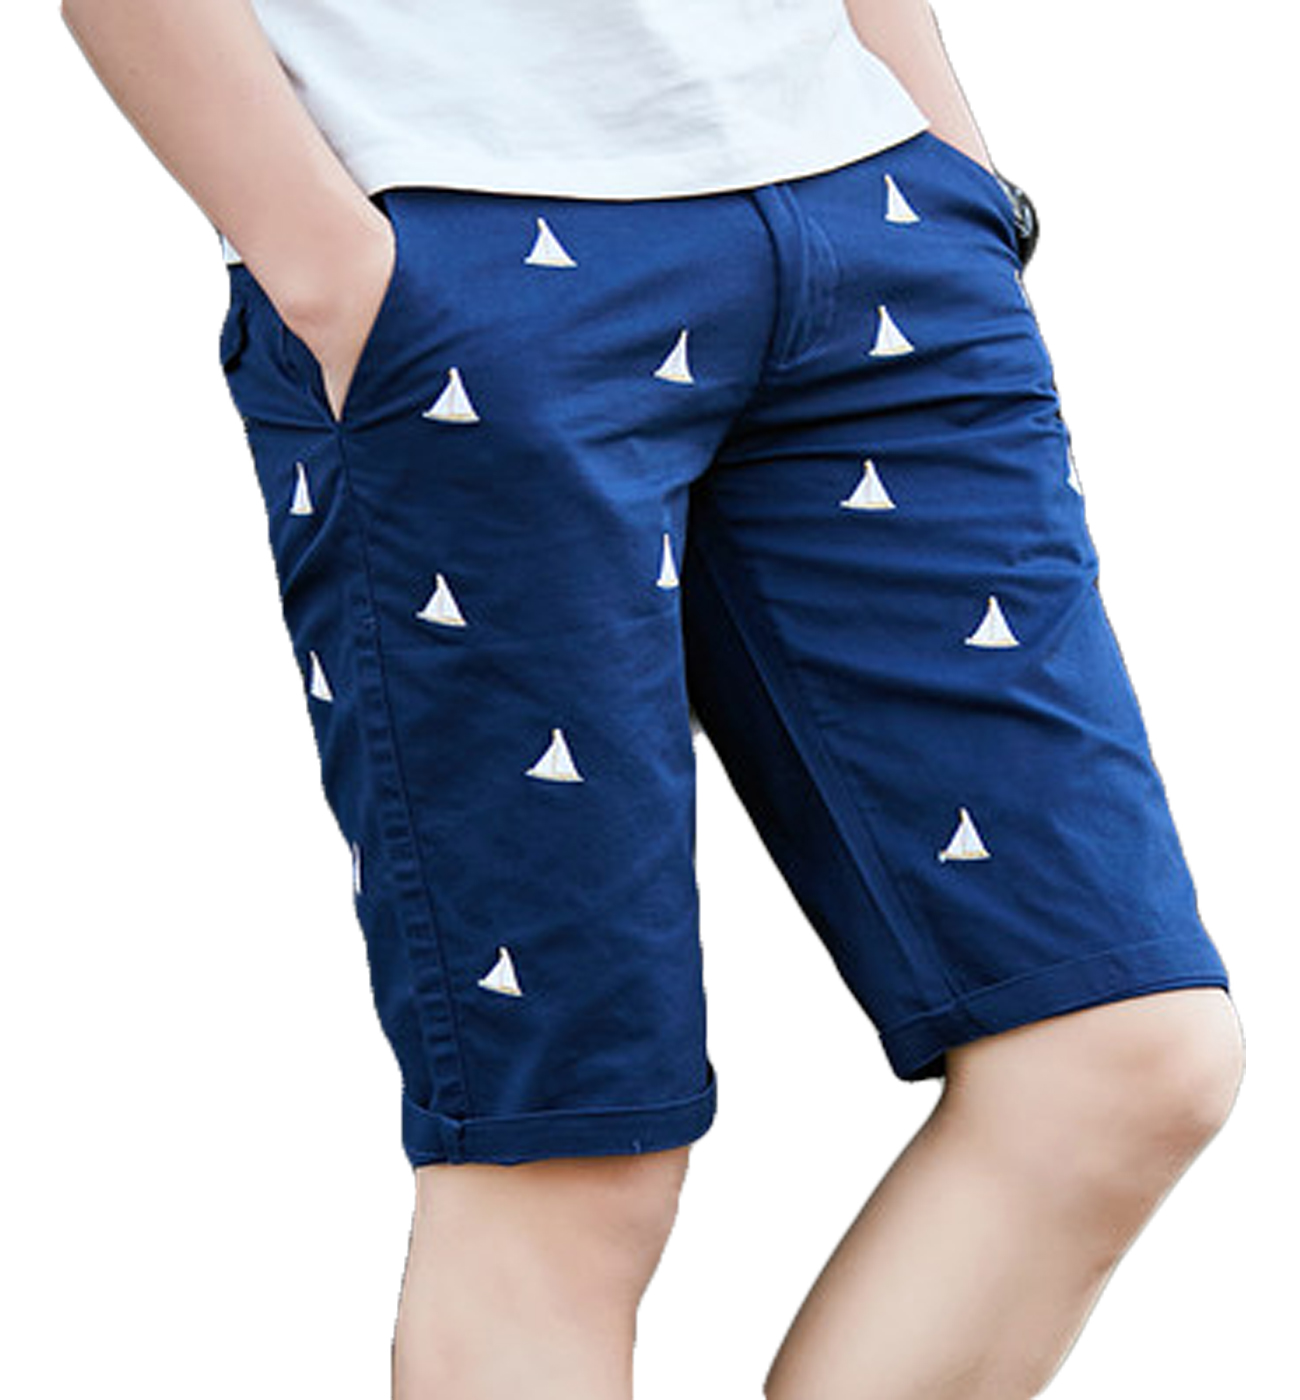 Blue Fashionable Mens Sail Slim Barcos bordados Shorts de gama alta